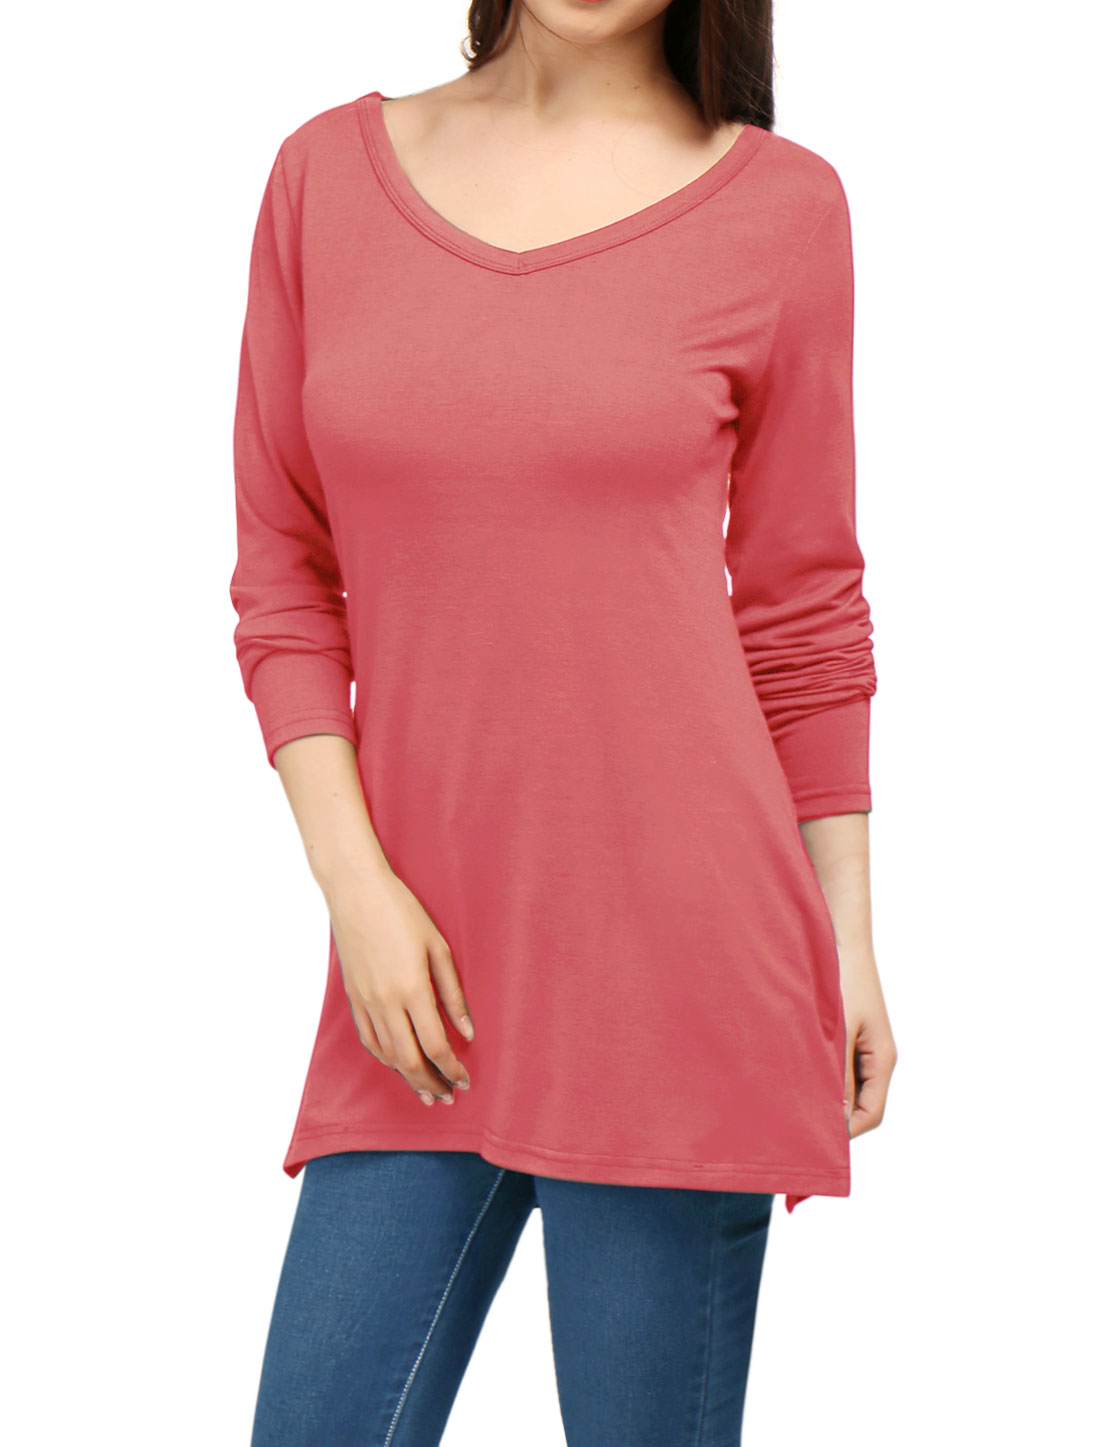 Lady Split Side Design Low Hight Hem Leisure Tunic Top Coral S